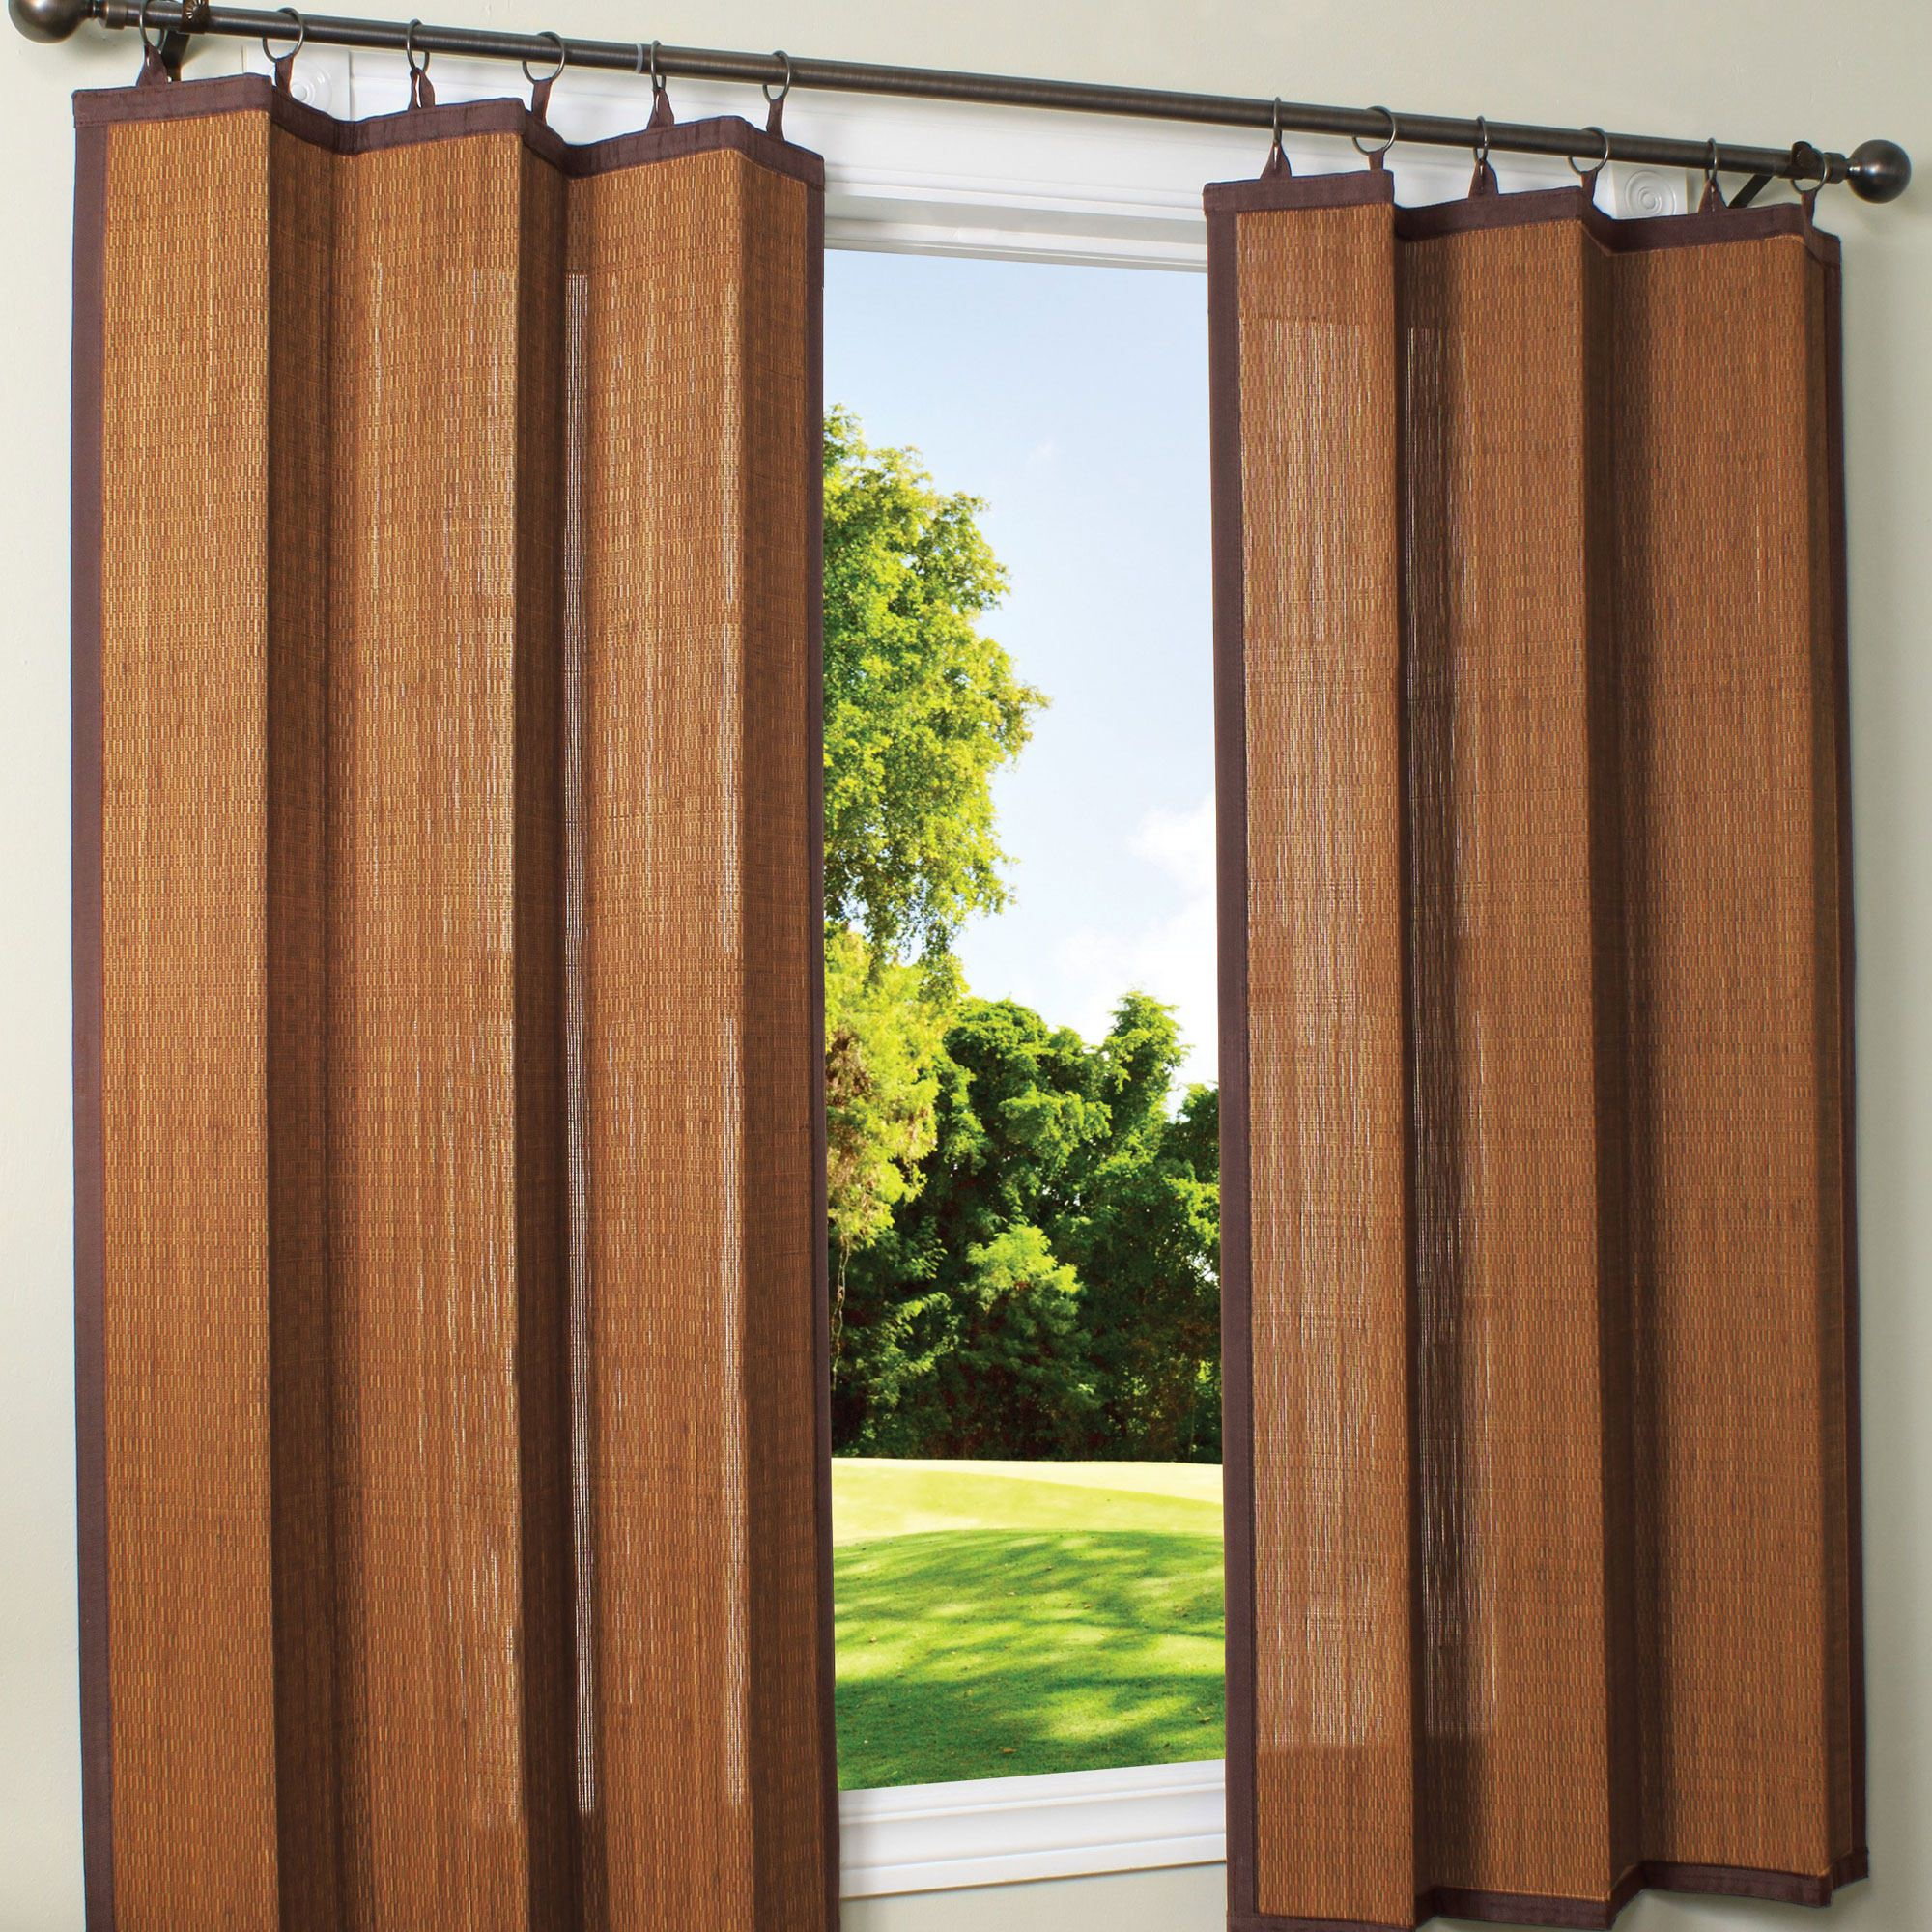 Vertical bamboo curtains - Outdoor Bamboo Curtains Espresso Bamboo Outdoor Curtain 40 X 63 Ds Dfohome